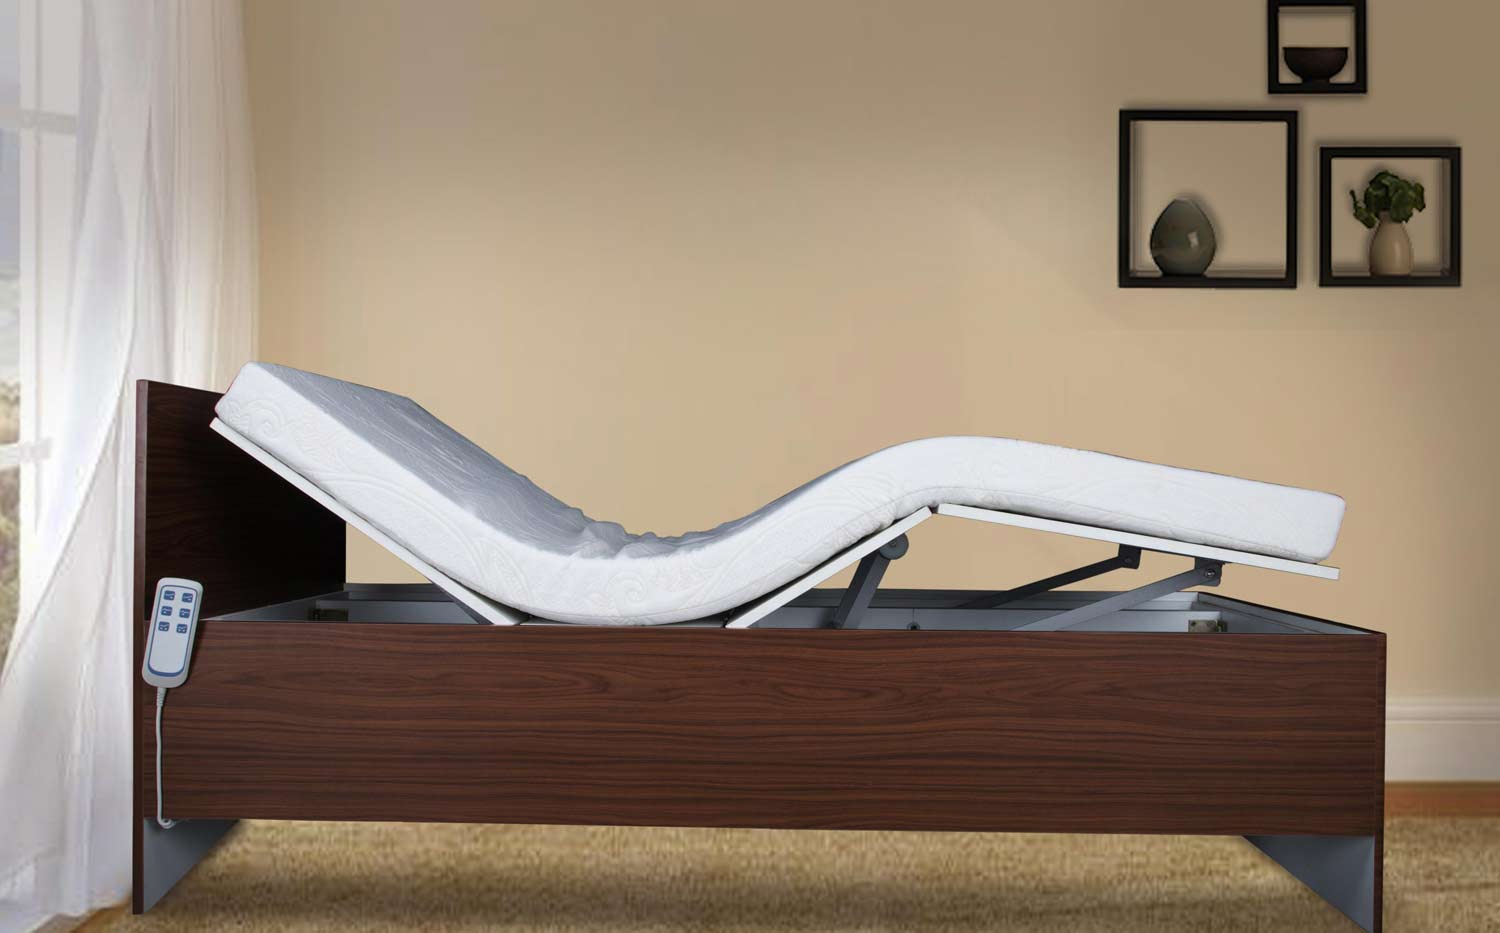 Zero Gravity Beds Electric Adjustable Bed Manufacturer In India